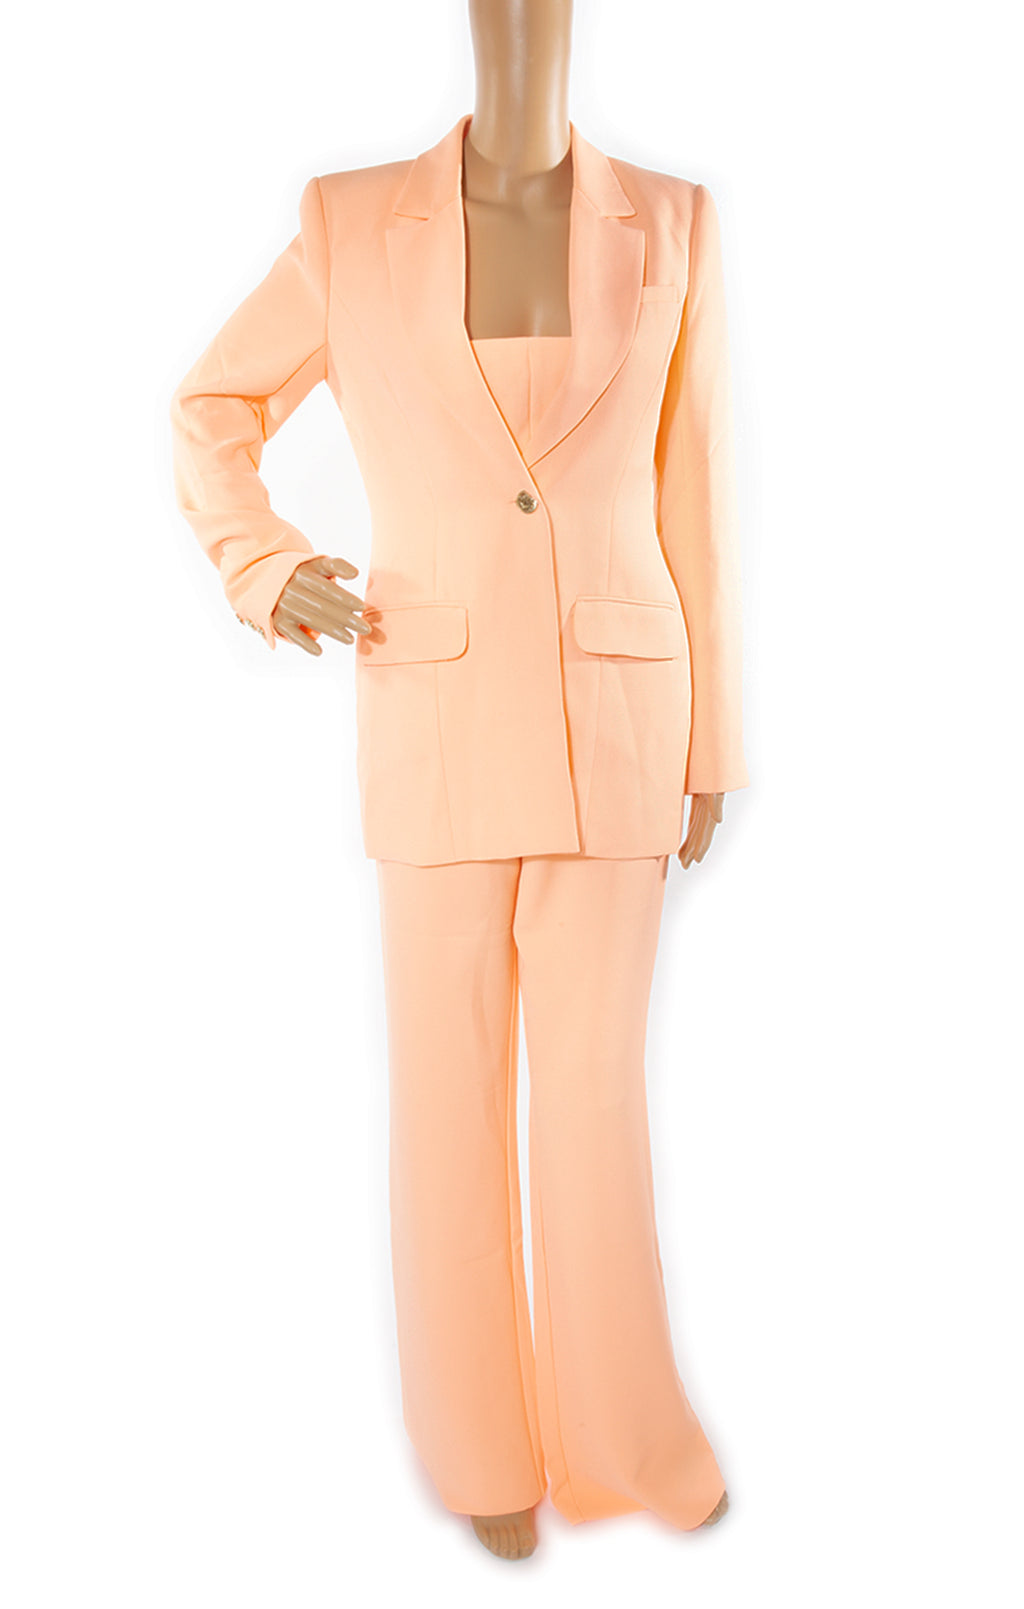 Front view of WHITE FOX Matching Three Piece Suit with Tags Size: Small (fits like US 6-8)